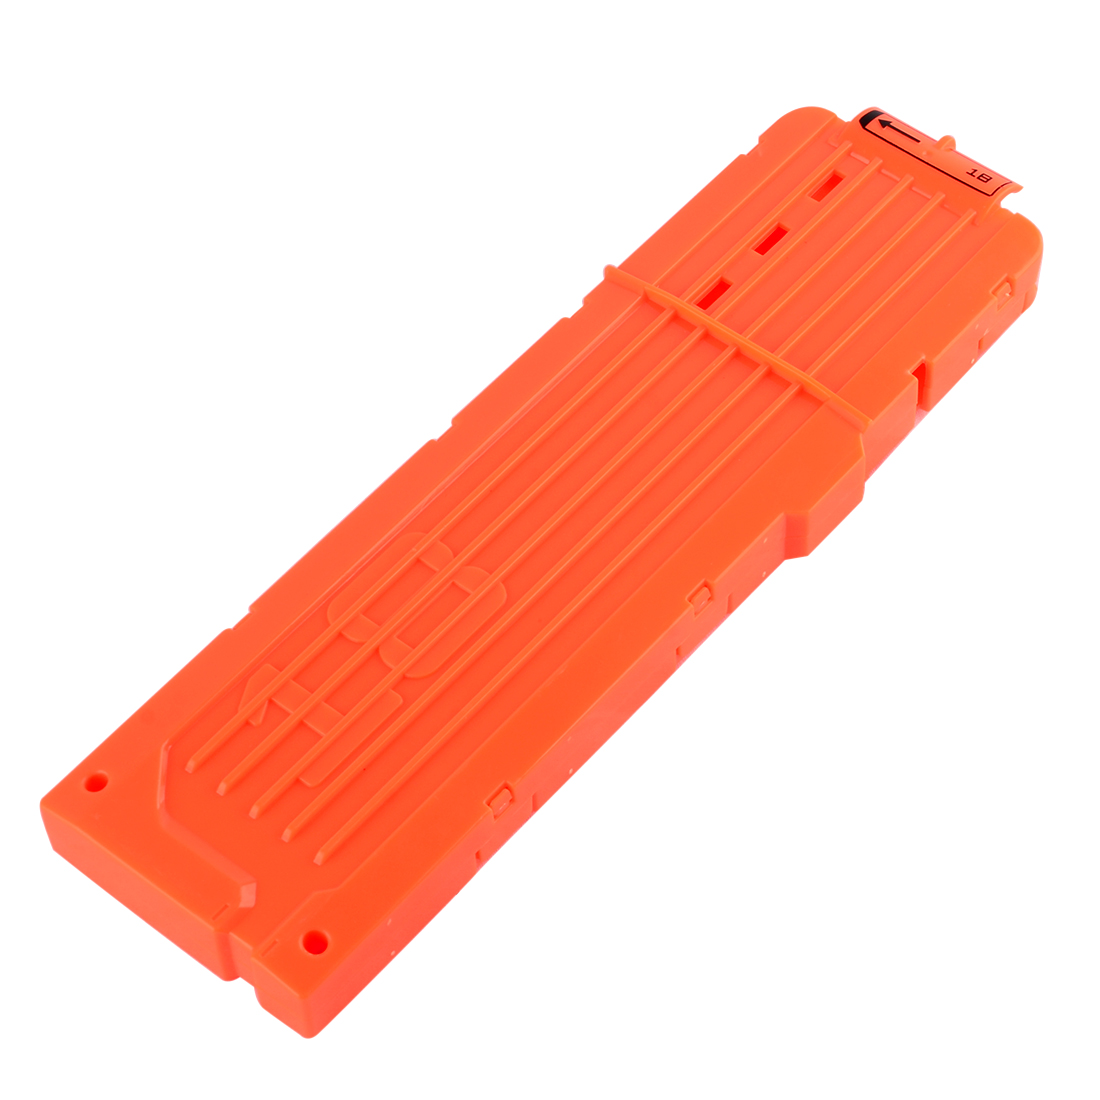 Surwish-Soft-Bullet-Clips-For-Nerf-Toy-Gun-18-Bullets-Ammo-Cartridge-Dart-For-Nerf-Gun-Clips-Orange-2